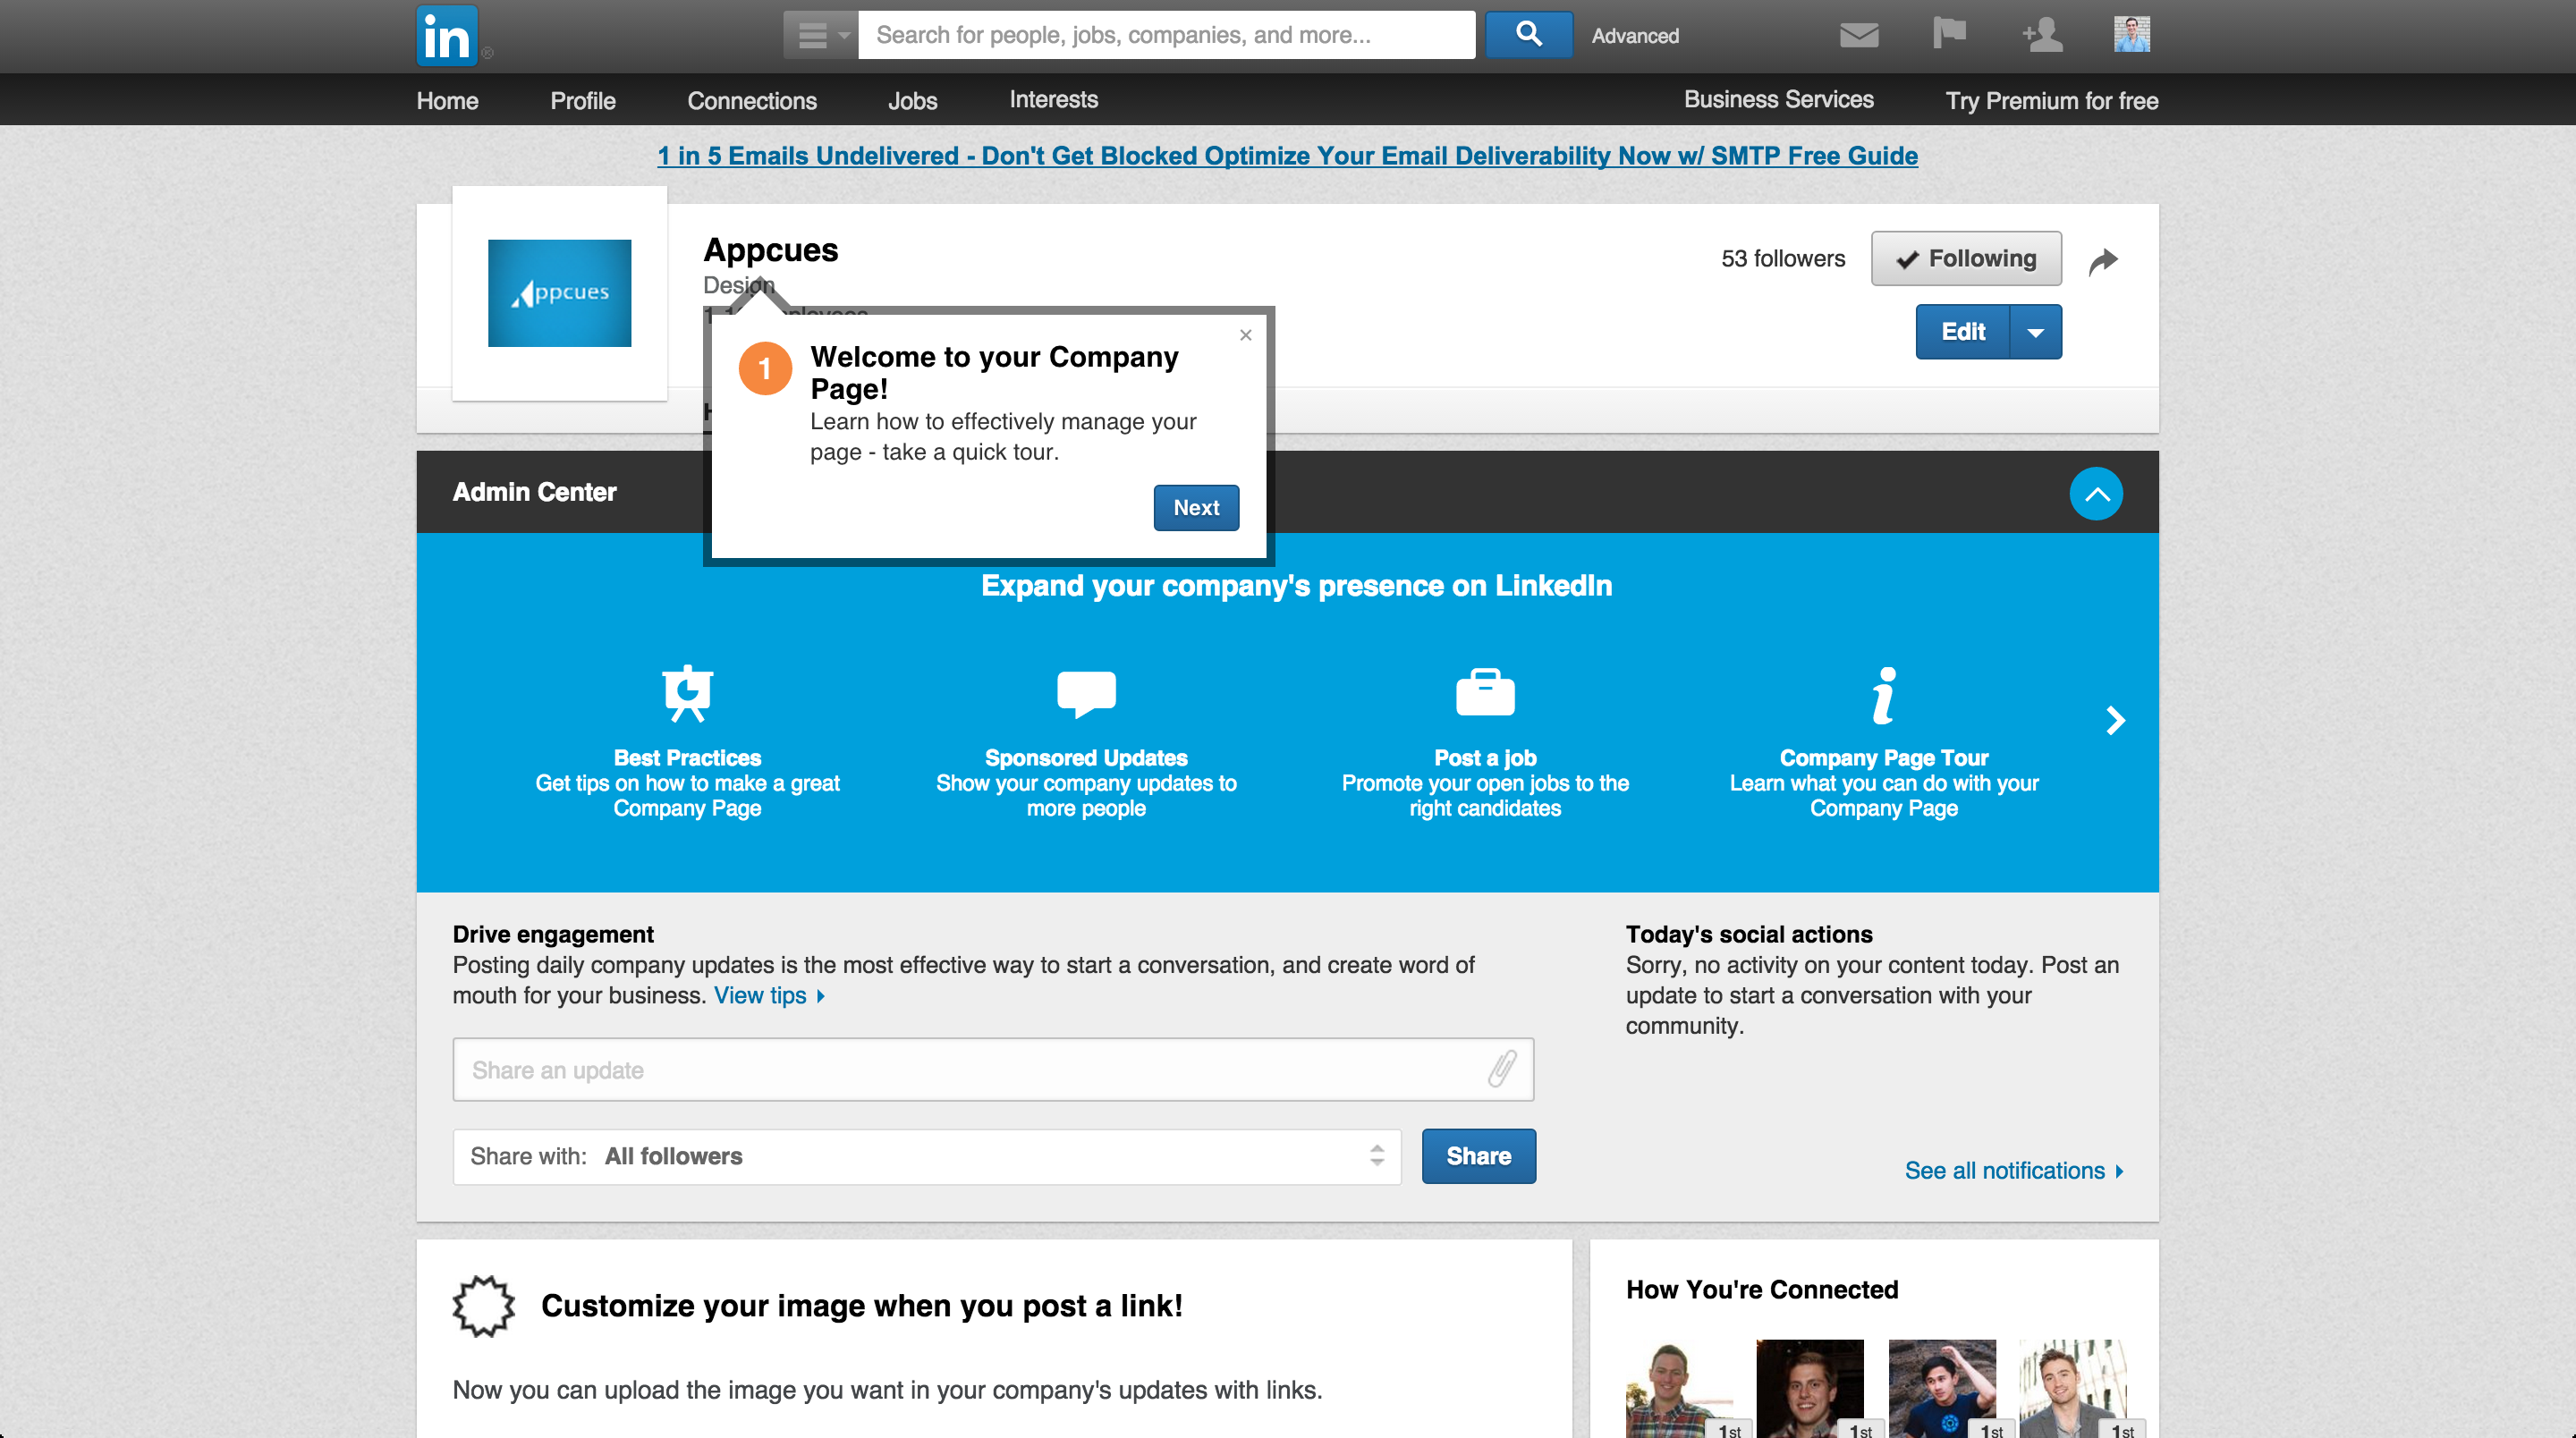 LinkedIn product tour company page 1